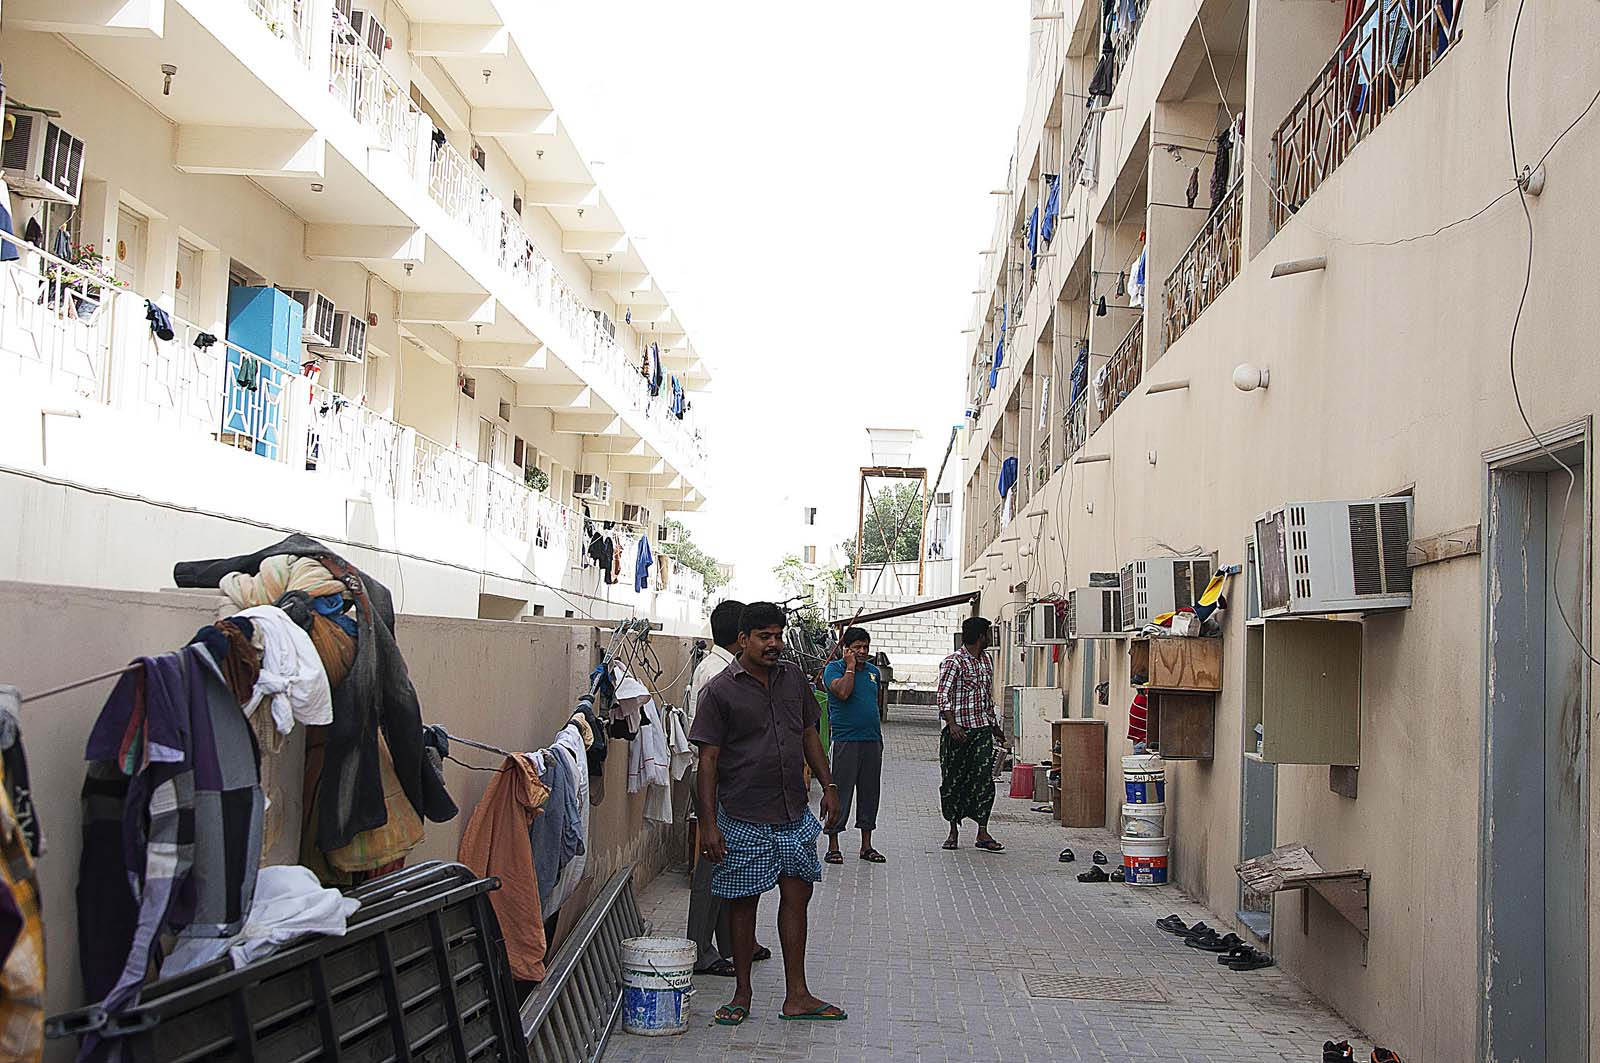 Researchers Qatar S Labor Policies Helping Fight Income